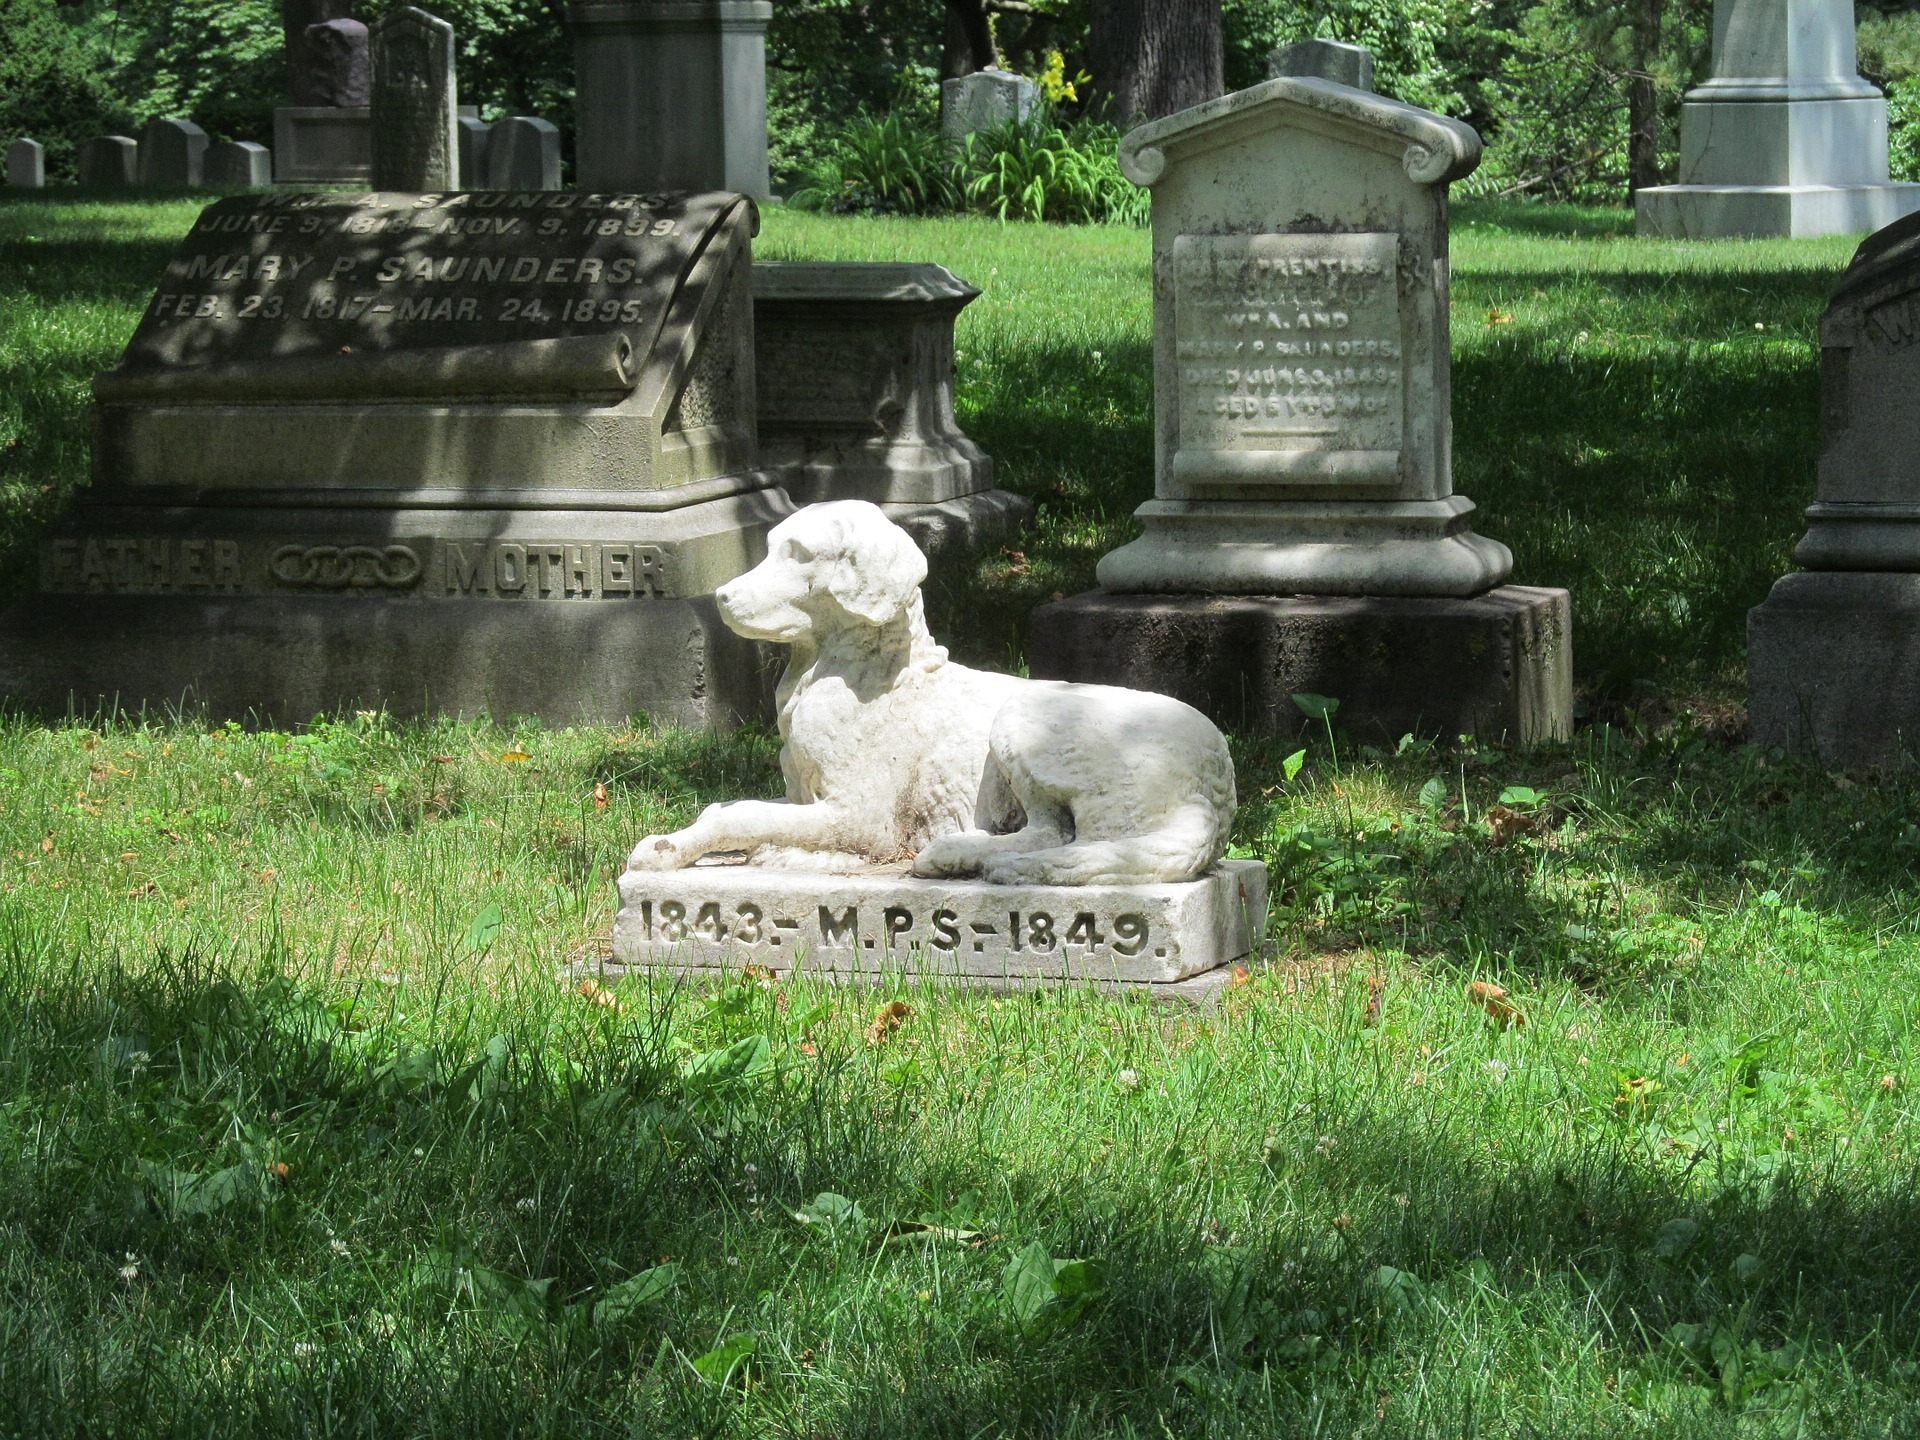 PET CEMETERY: The first animal grave archive is being created